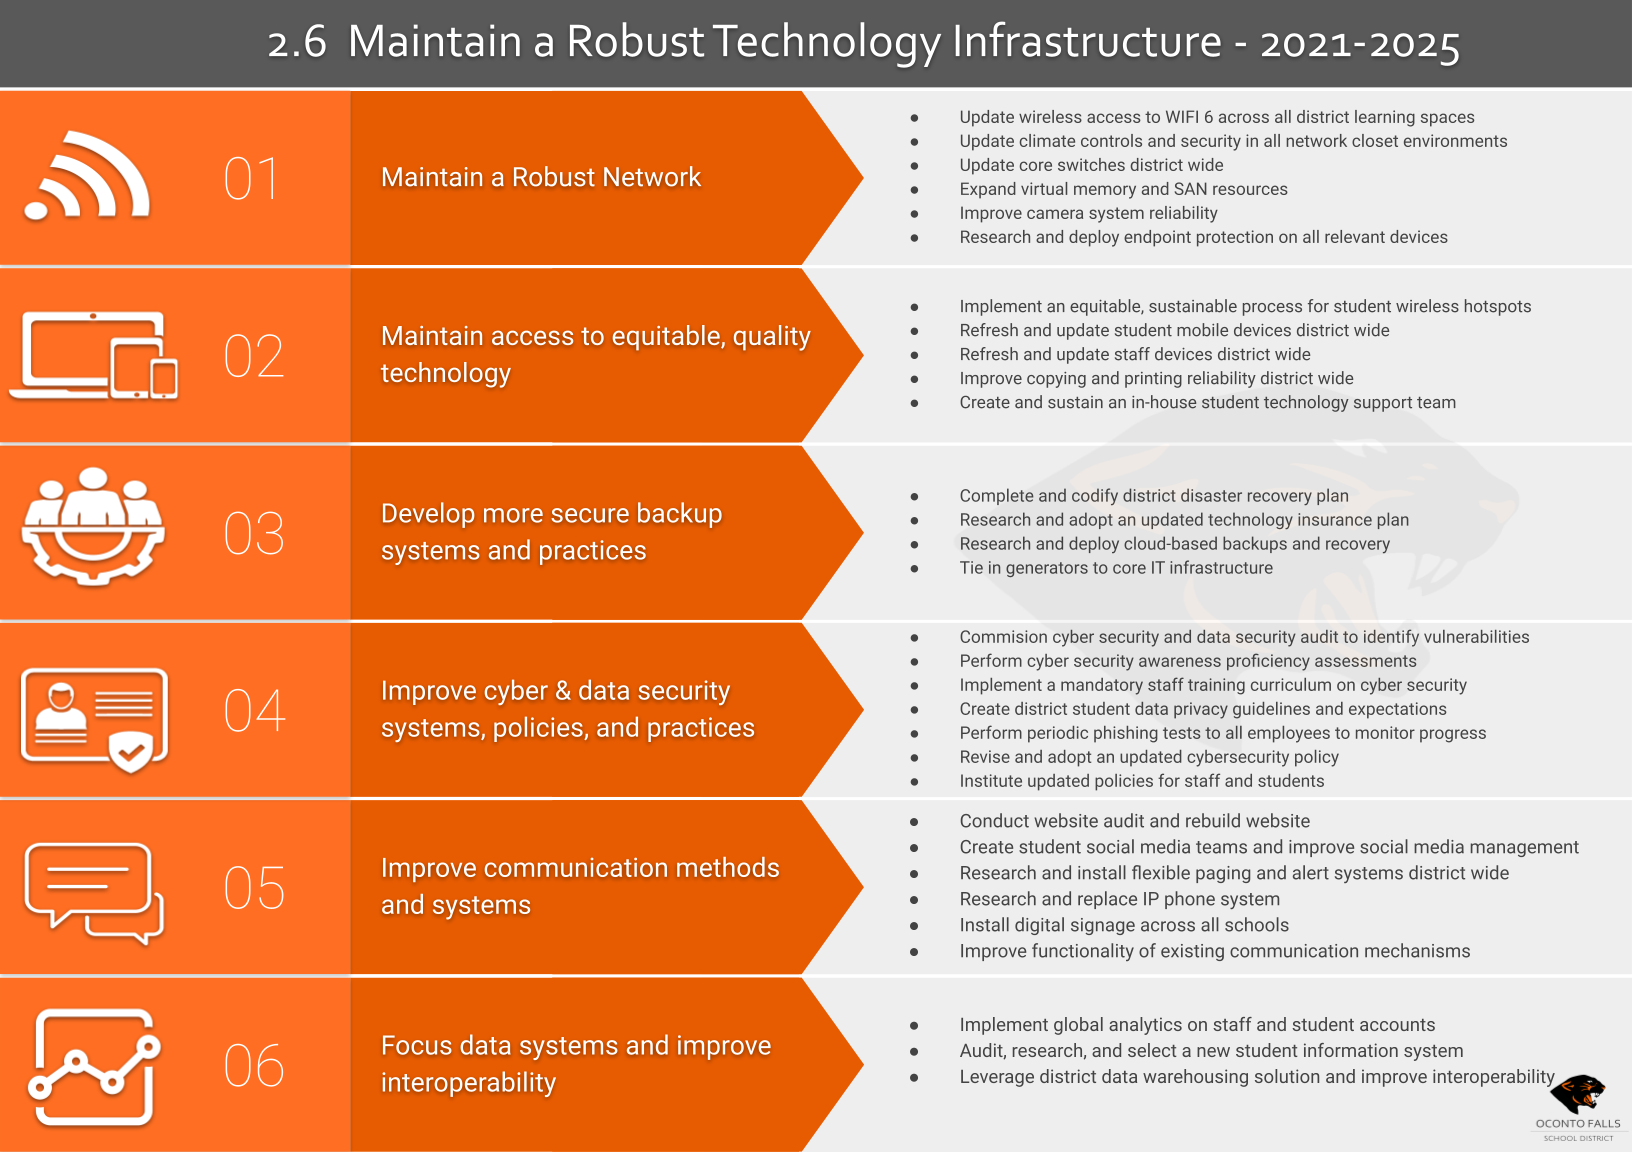 OFPS Technology Infrastructure Plan 2021-2025